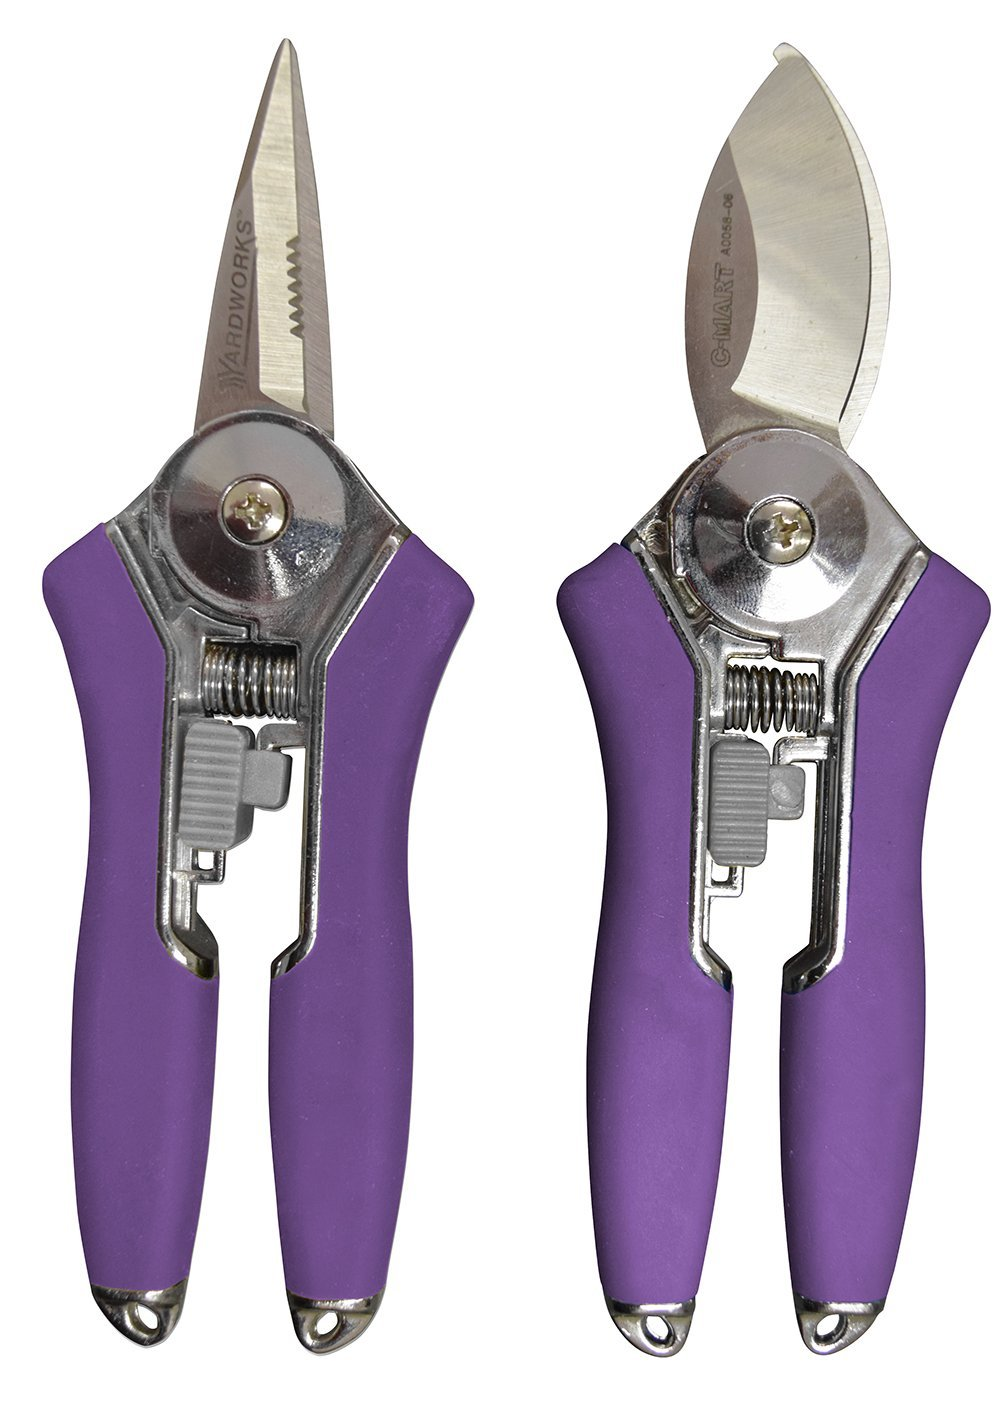 Radius Garden 2-Piece Pruning Tool Set - Includes Floral Shear and Mini Bypass Pruner, Purple